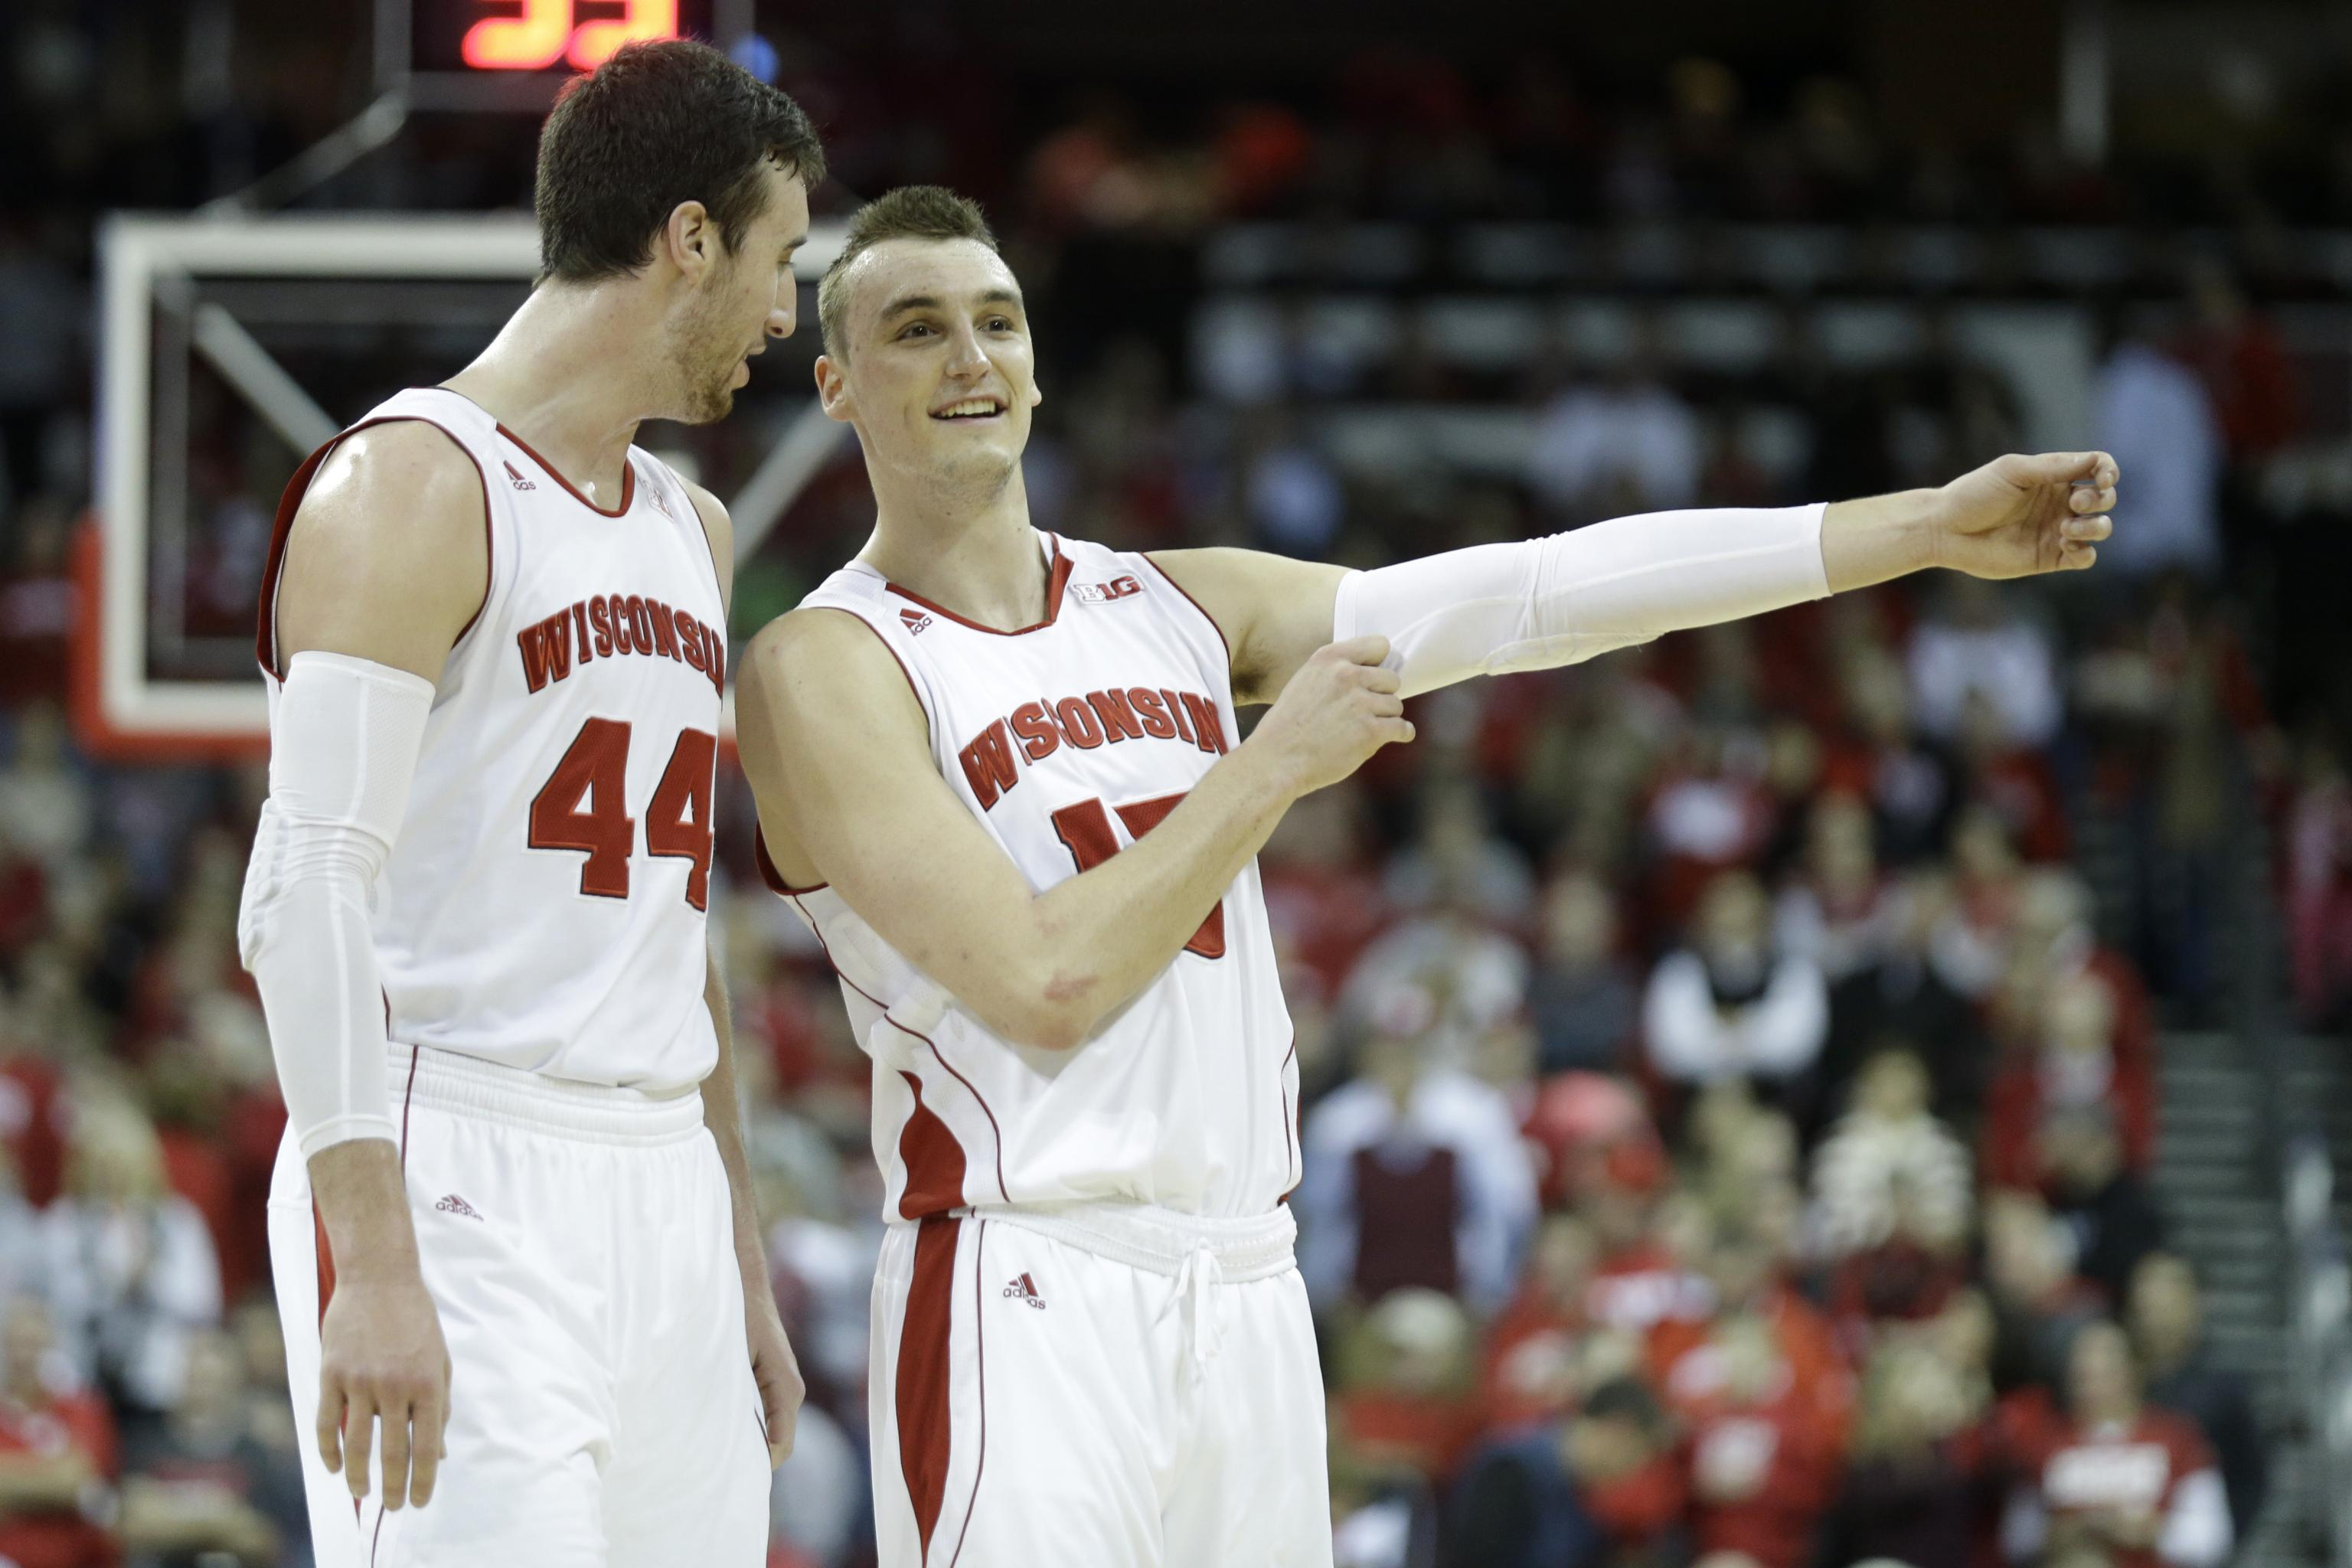 lowest price 55970 ad9b4 NBA Draft Notebook: Projecting Wisconsin's Frank Kaminsky ...